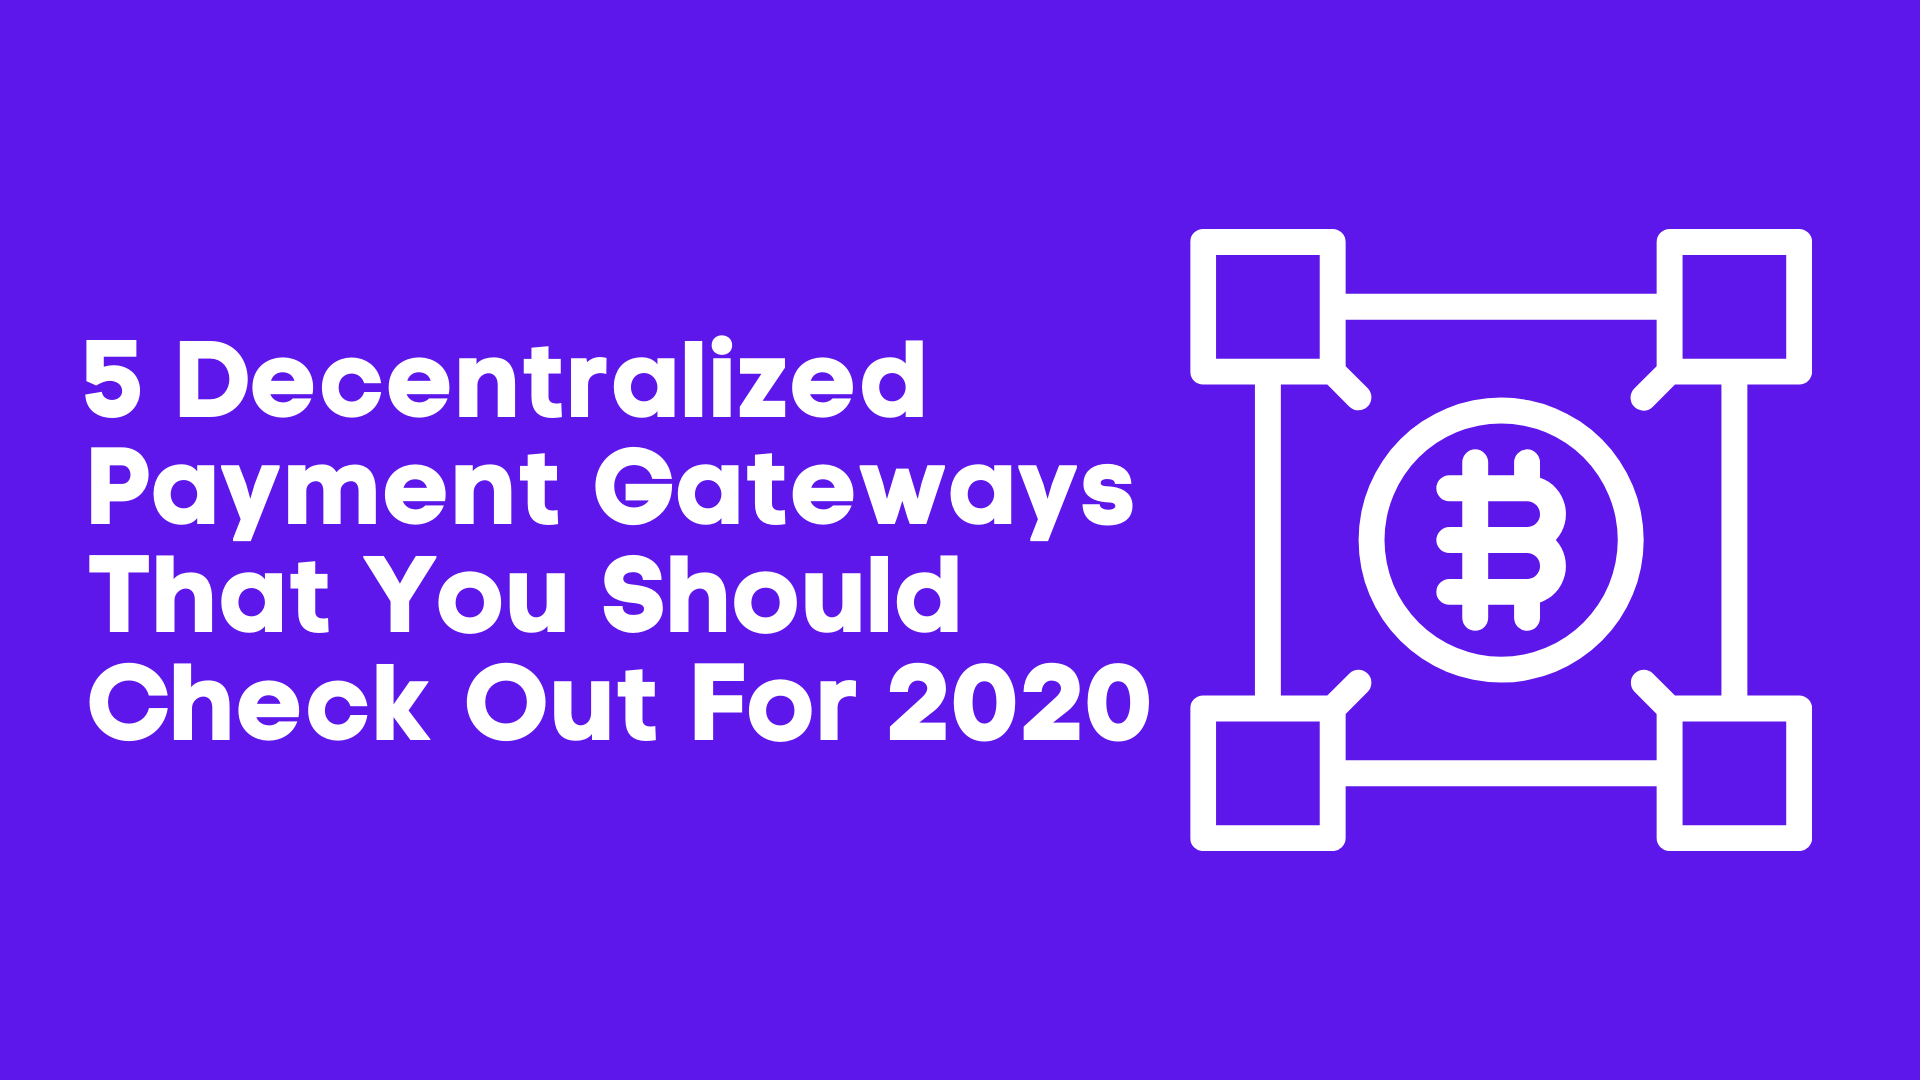 5 decentralized payment gateways